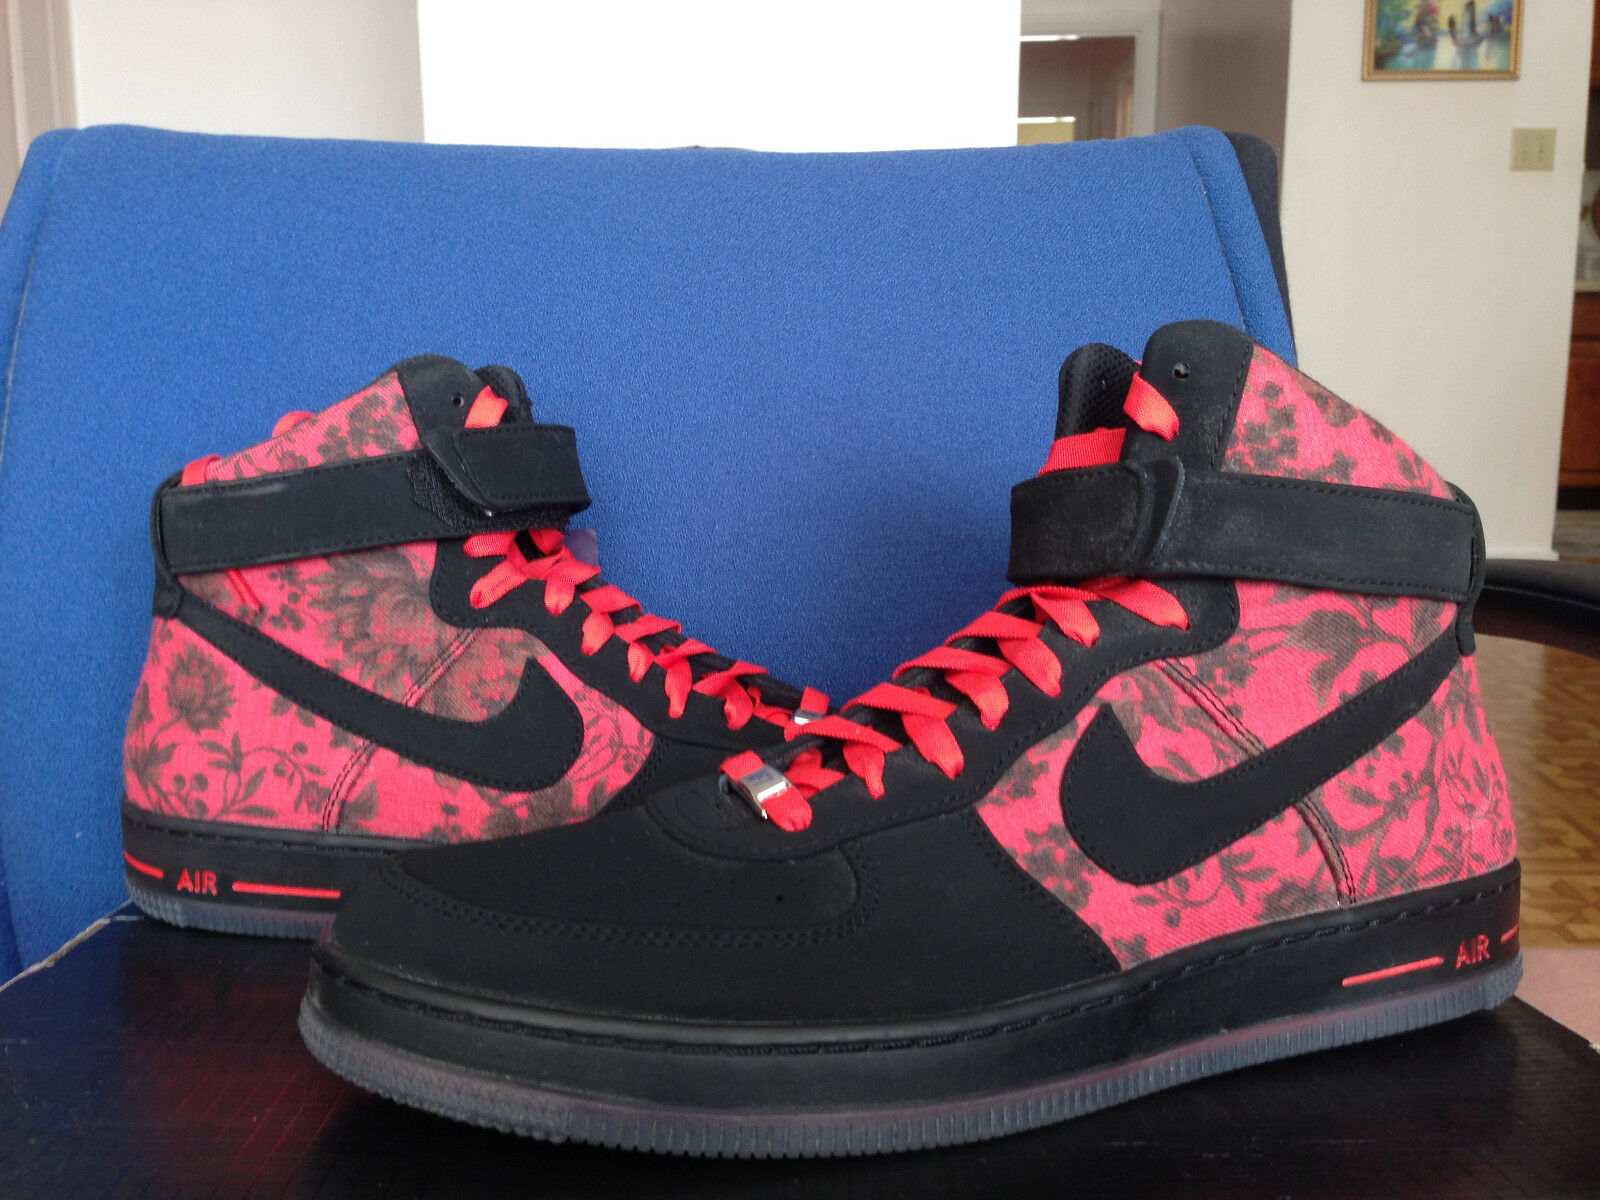 Nike Air Force 1 Floral QS Downtown Hi High Floral 1 Kd Rose Garden Black red Lillard 14 4e78fe